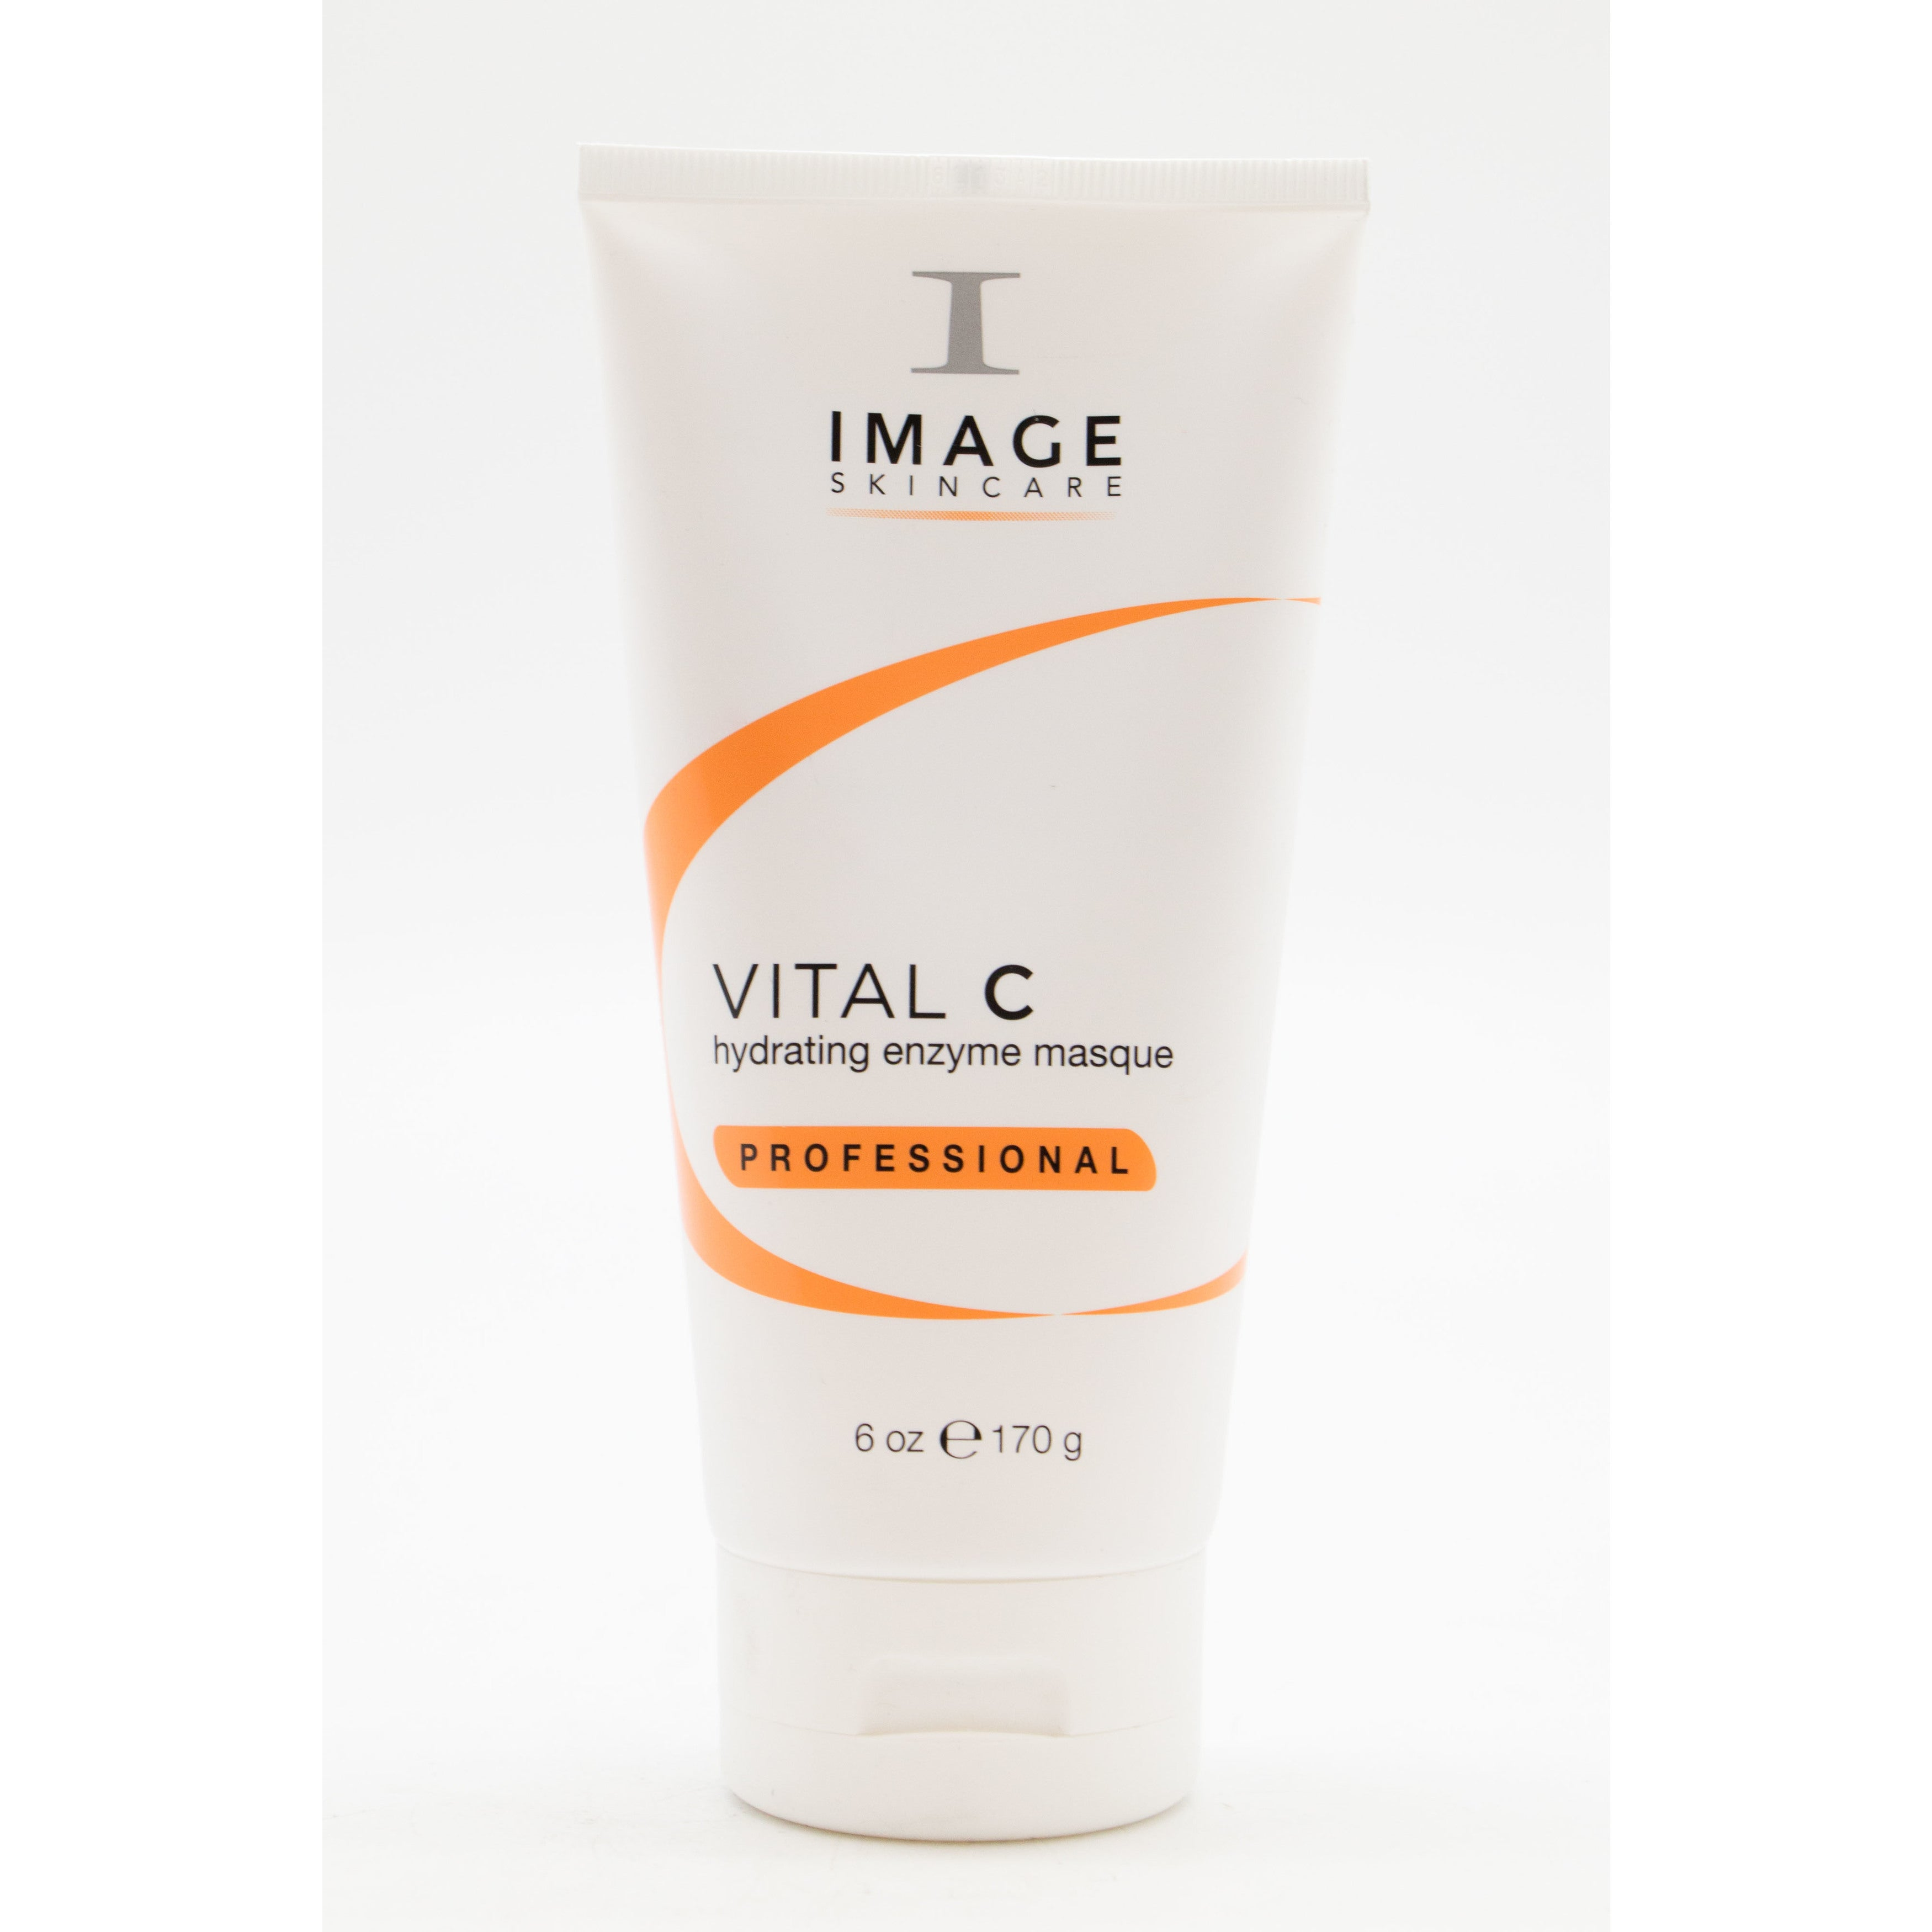 Shop Image Skincare Vital C Hydrating 6 Ounce Enzyme Masque Pro